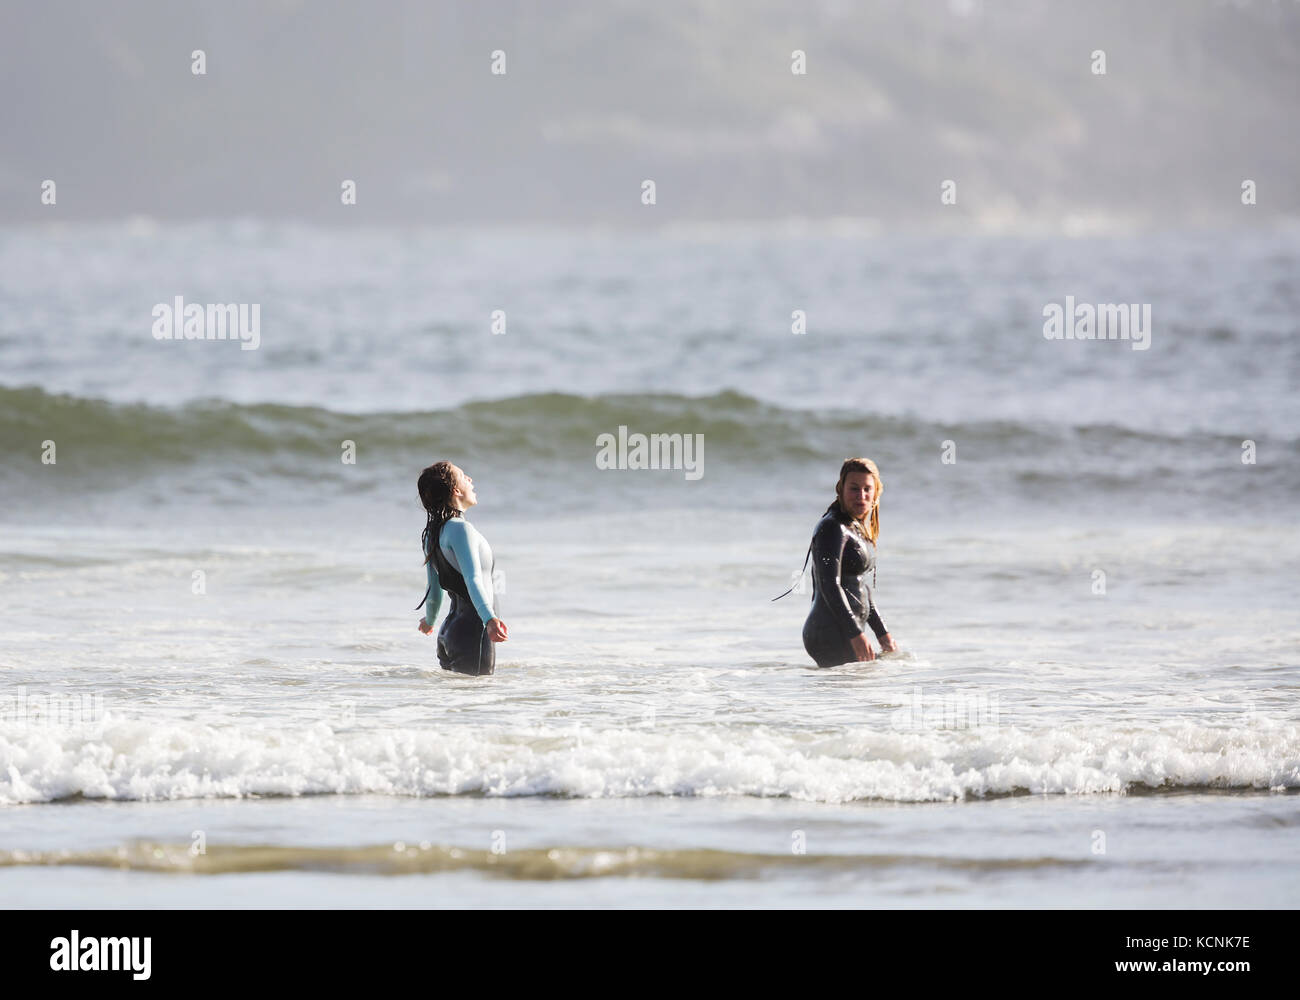 Two friends embrace the moment in the cold waters of Pacific Rim, celebrating a great day of surfing off of Chesterman - Stock Image